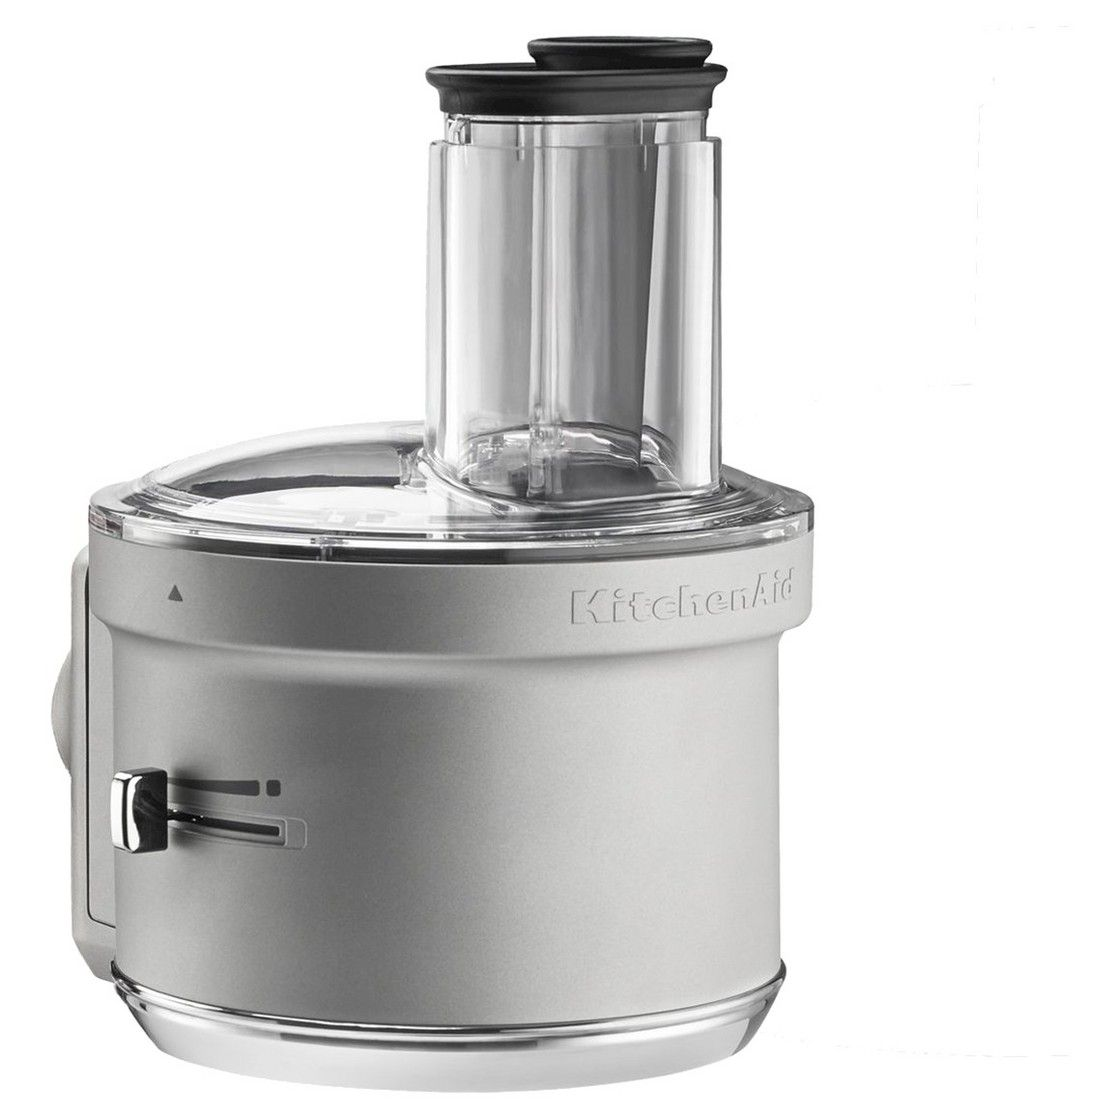 Kitchenaid Food Processor Mixer Attachment Ksm2fpa Food